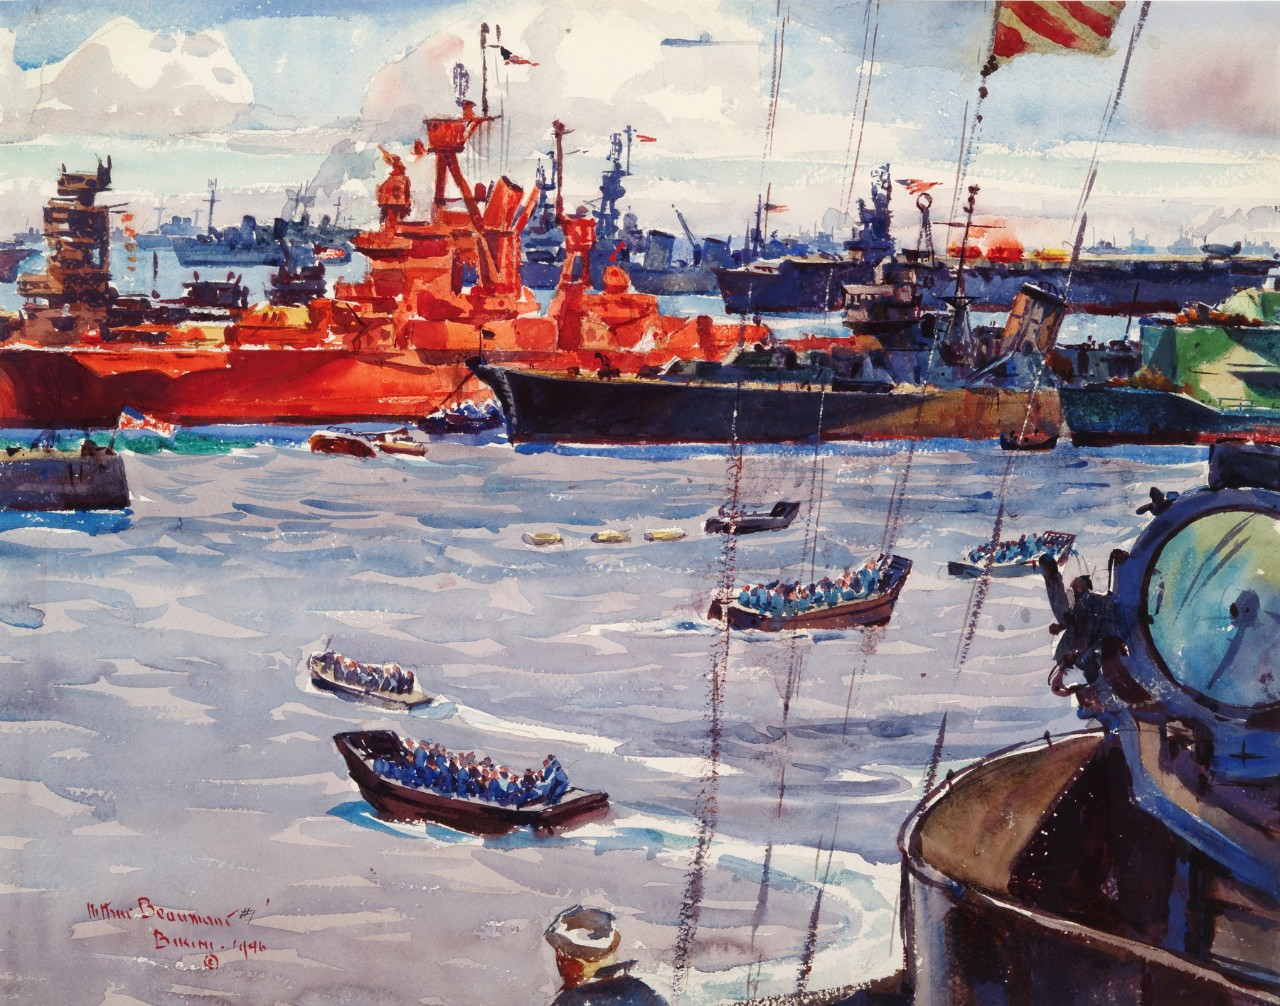 A battleship painted orange is in the center of boats and ships